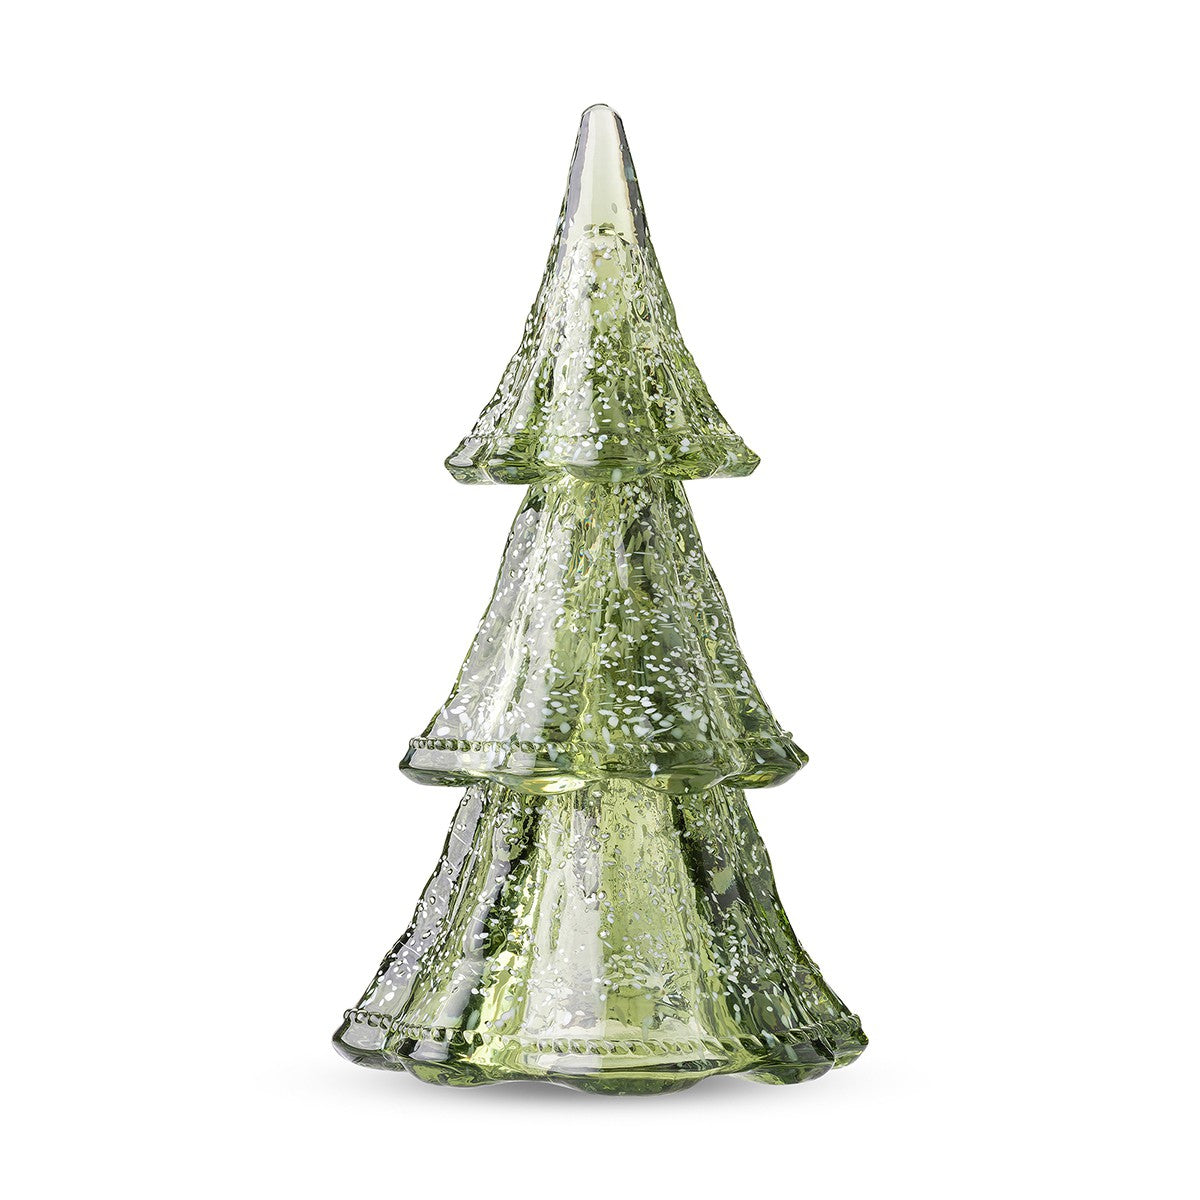 B&T Green/White Medium Tree Set of 3